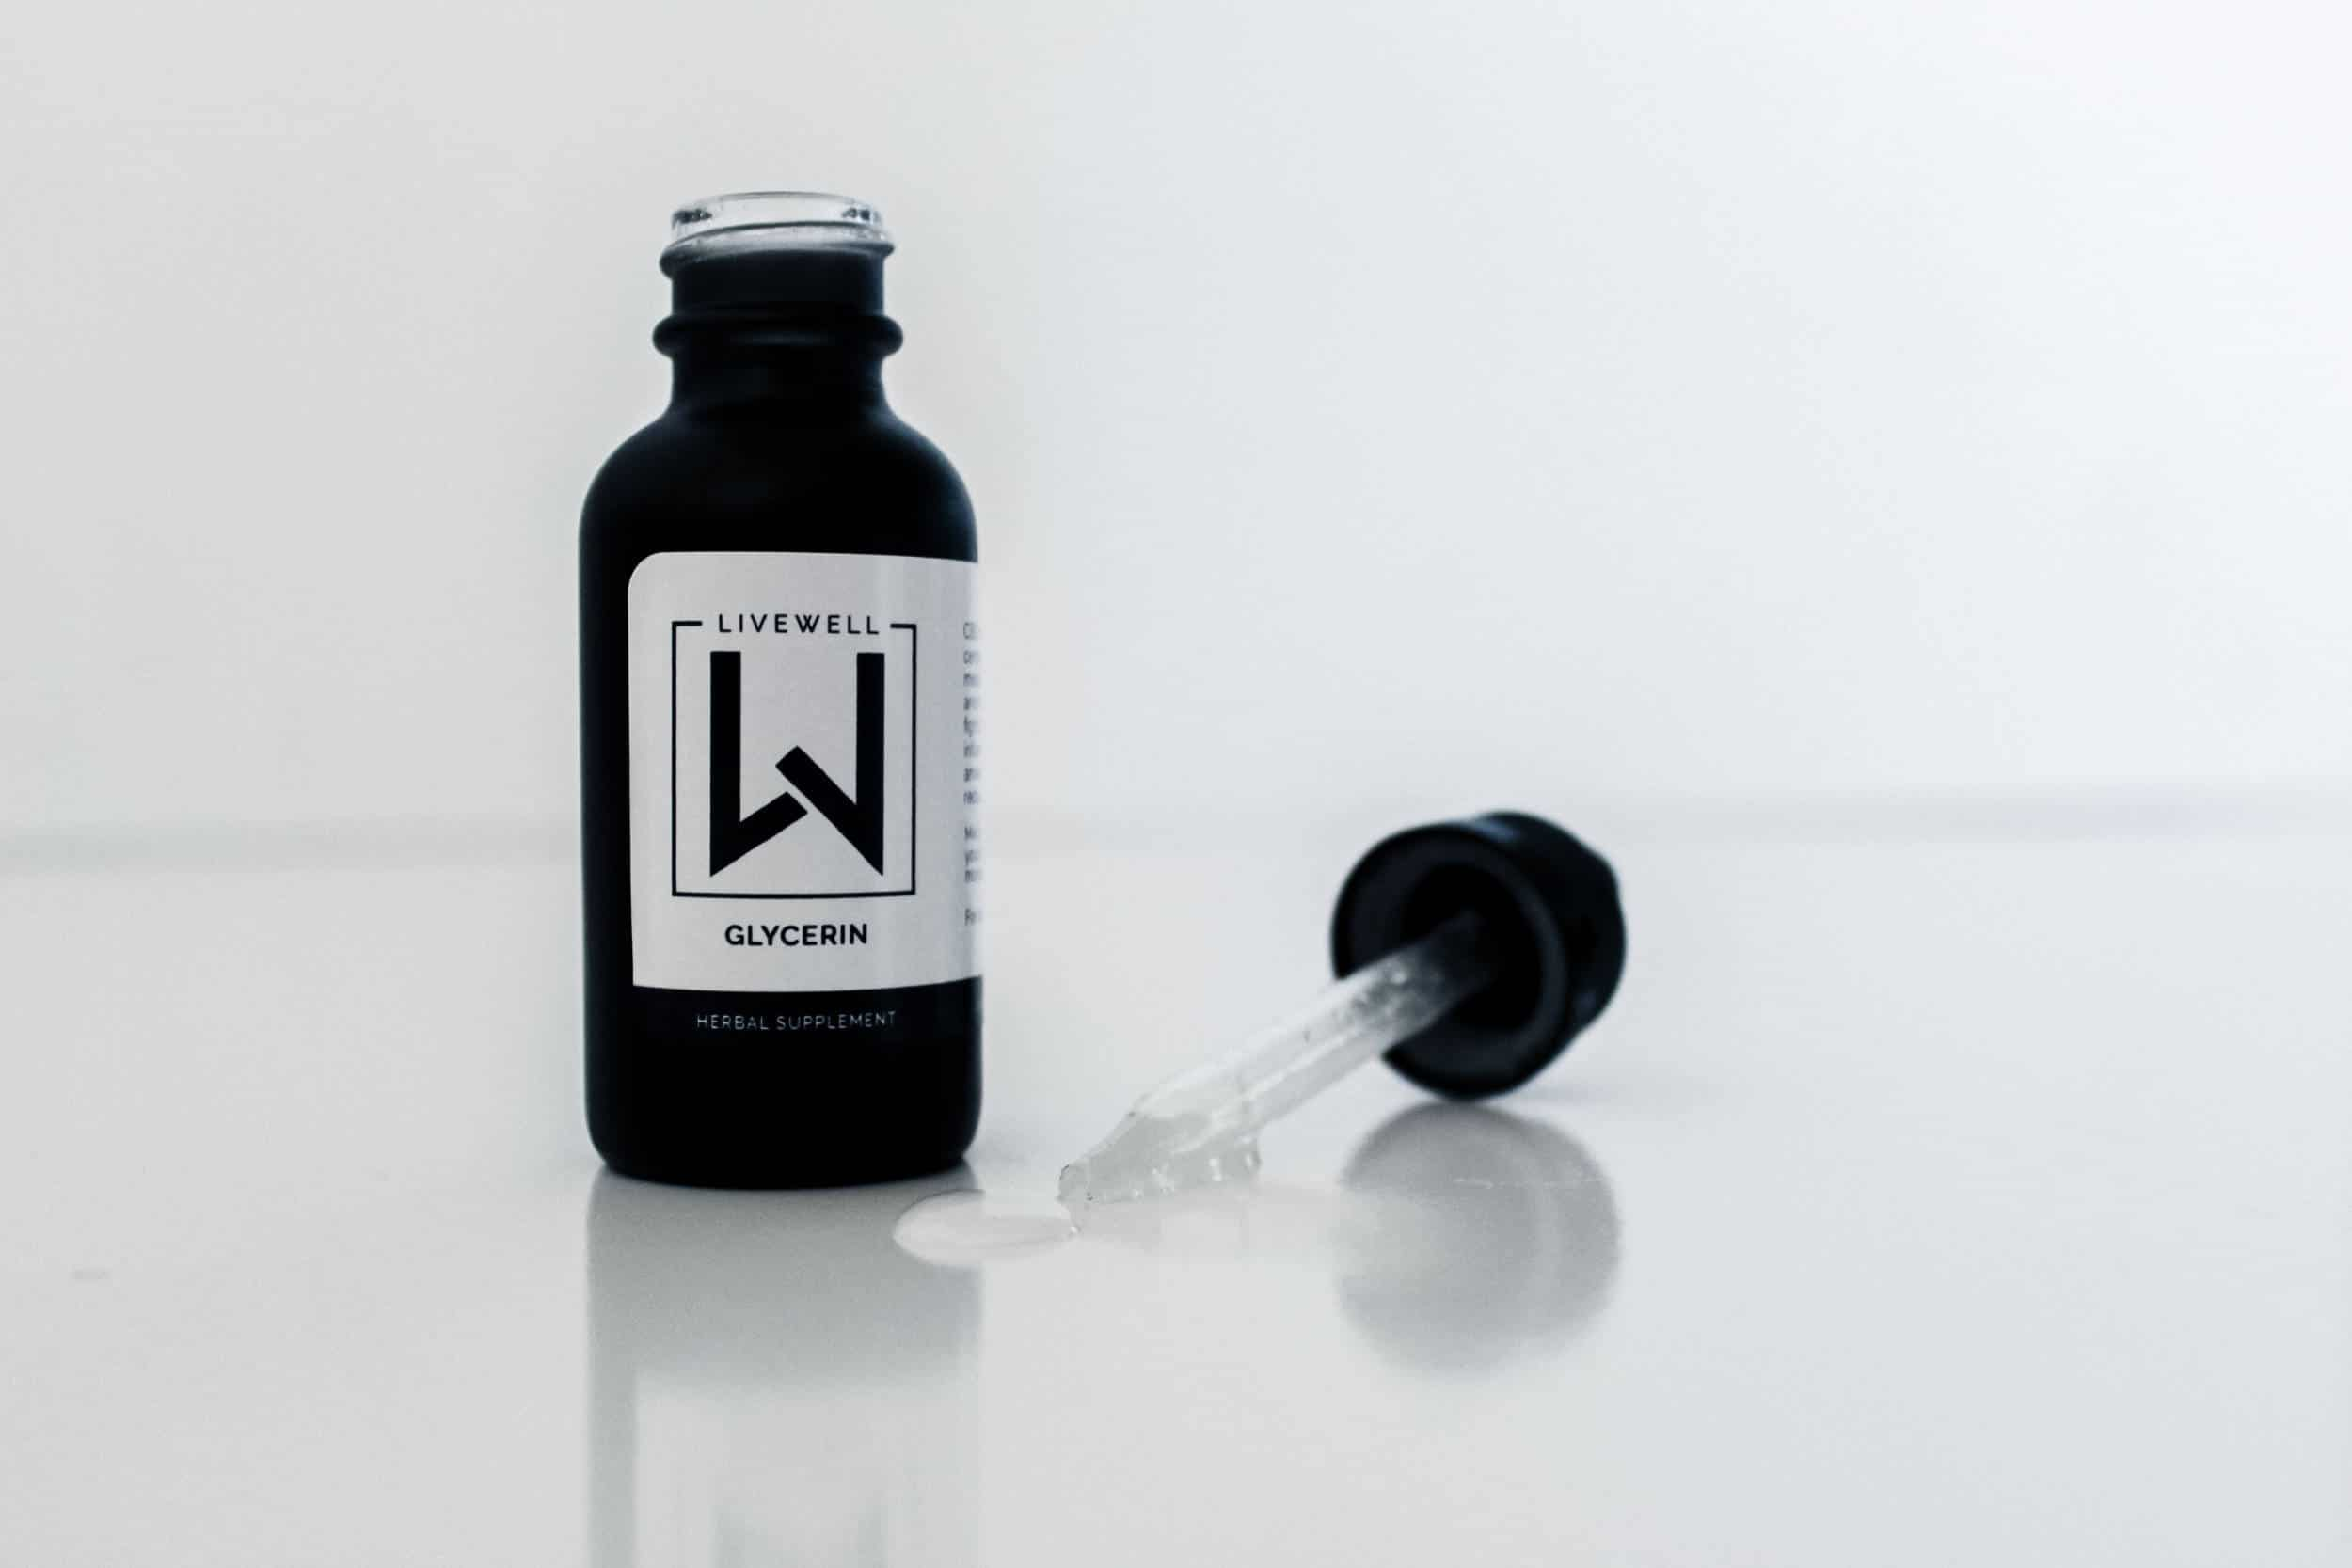 LiveWell Brands Vapes Coupon Code Online Discount Save On Cannabis